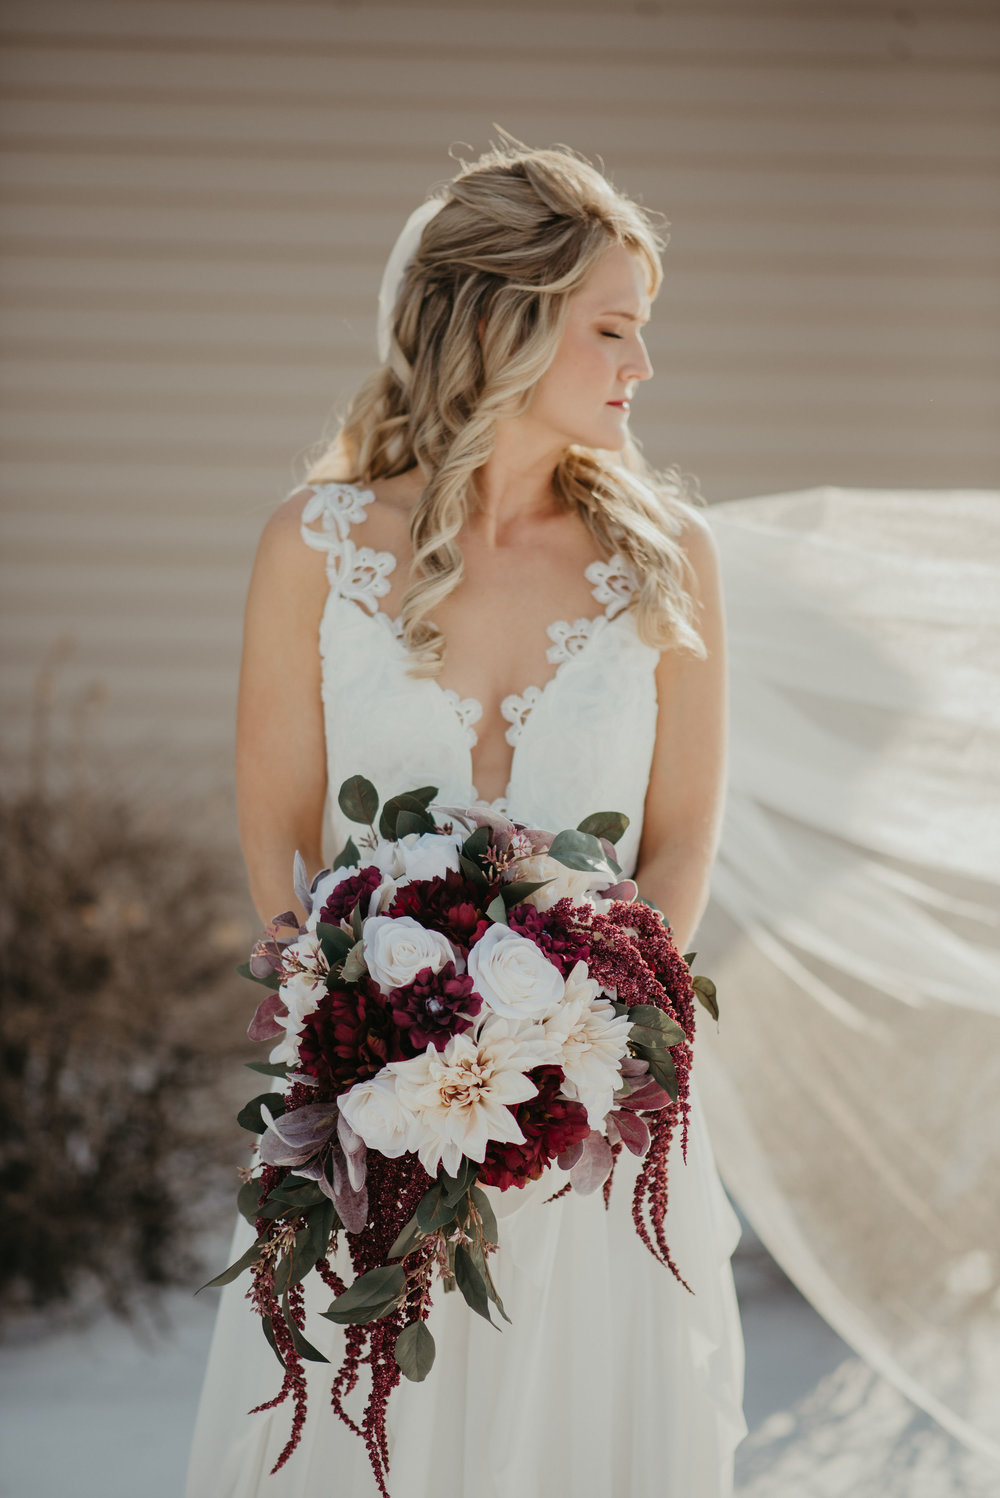 Burgundy-modified-cascade-silk-wedding-bouquet-roses-eucalyptus-branches-2.jpg